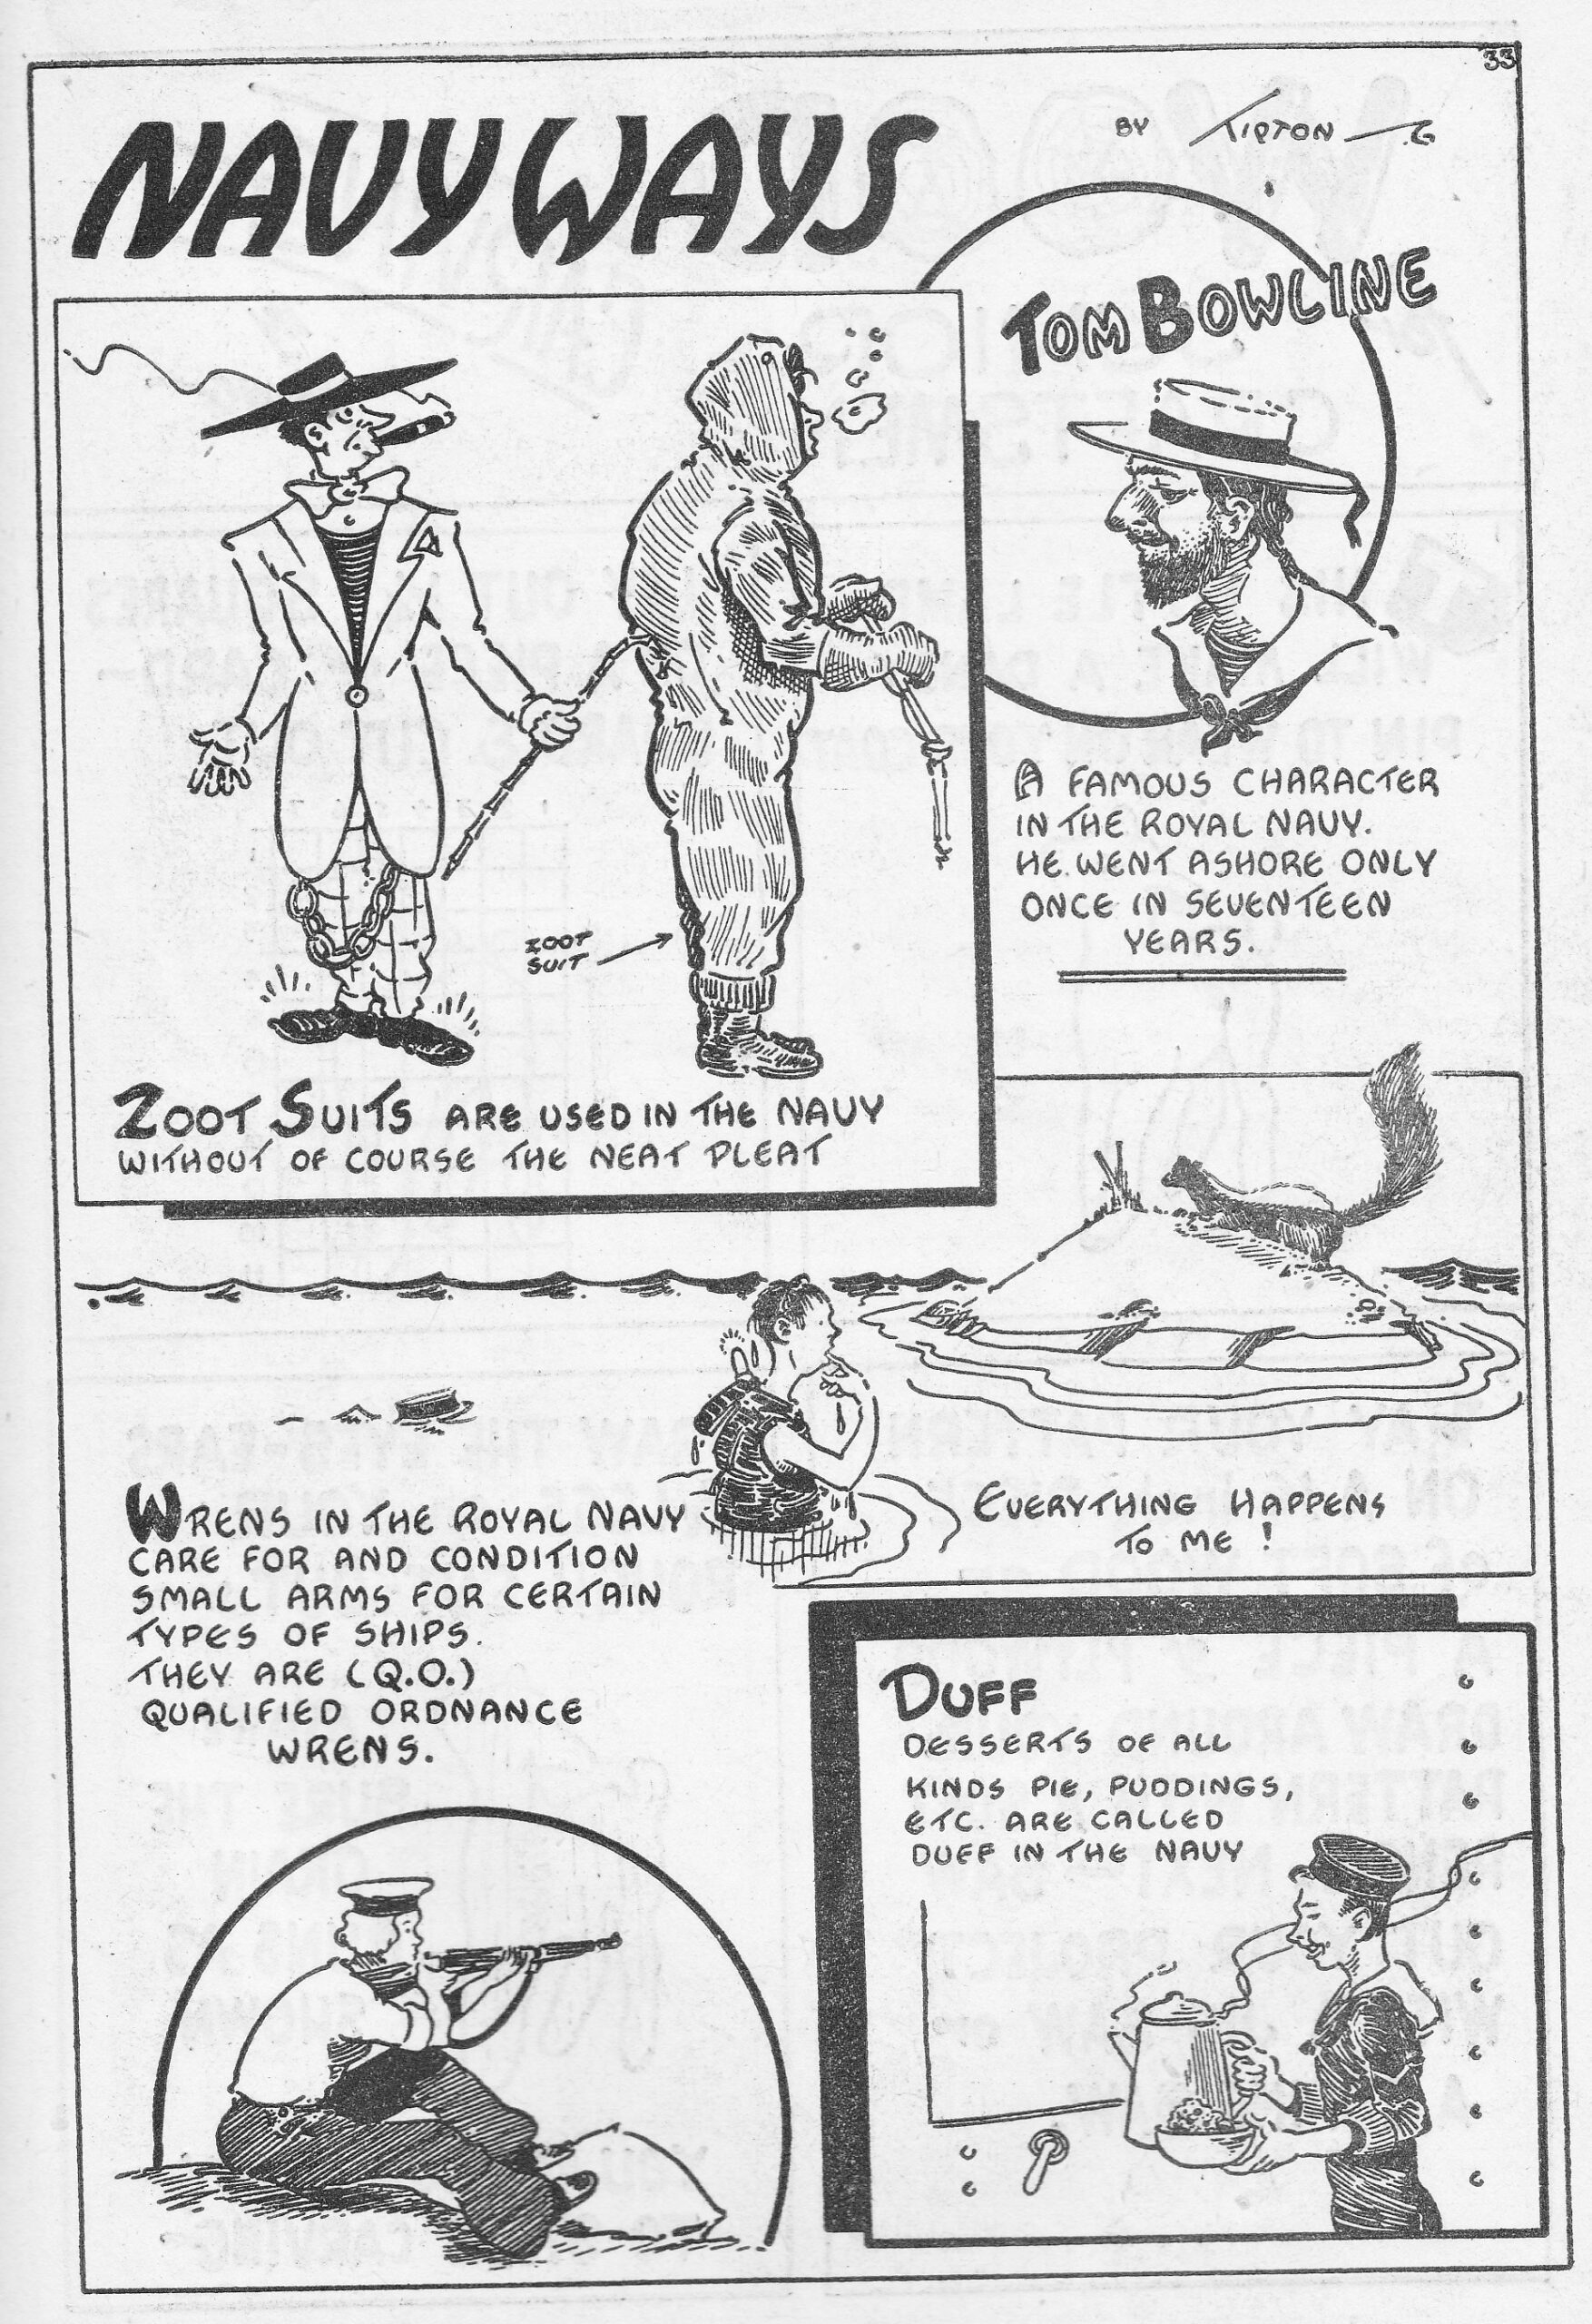 C:\Users\Robert\Documents\CARTOONING ILLUSTRATION ANIMATION\IMAGE CARTOON\IMAGE CARTOON N\NAVY WAYS Canadian Heroes, 5-3, june 1945, 33.jpg